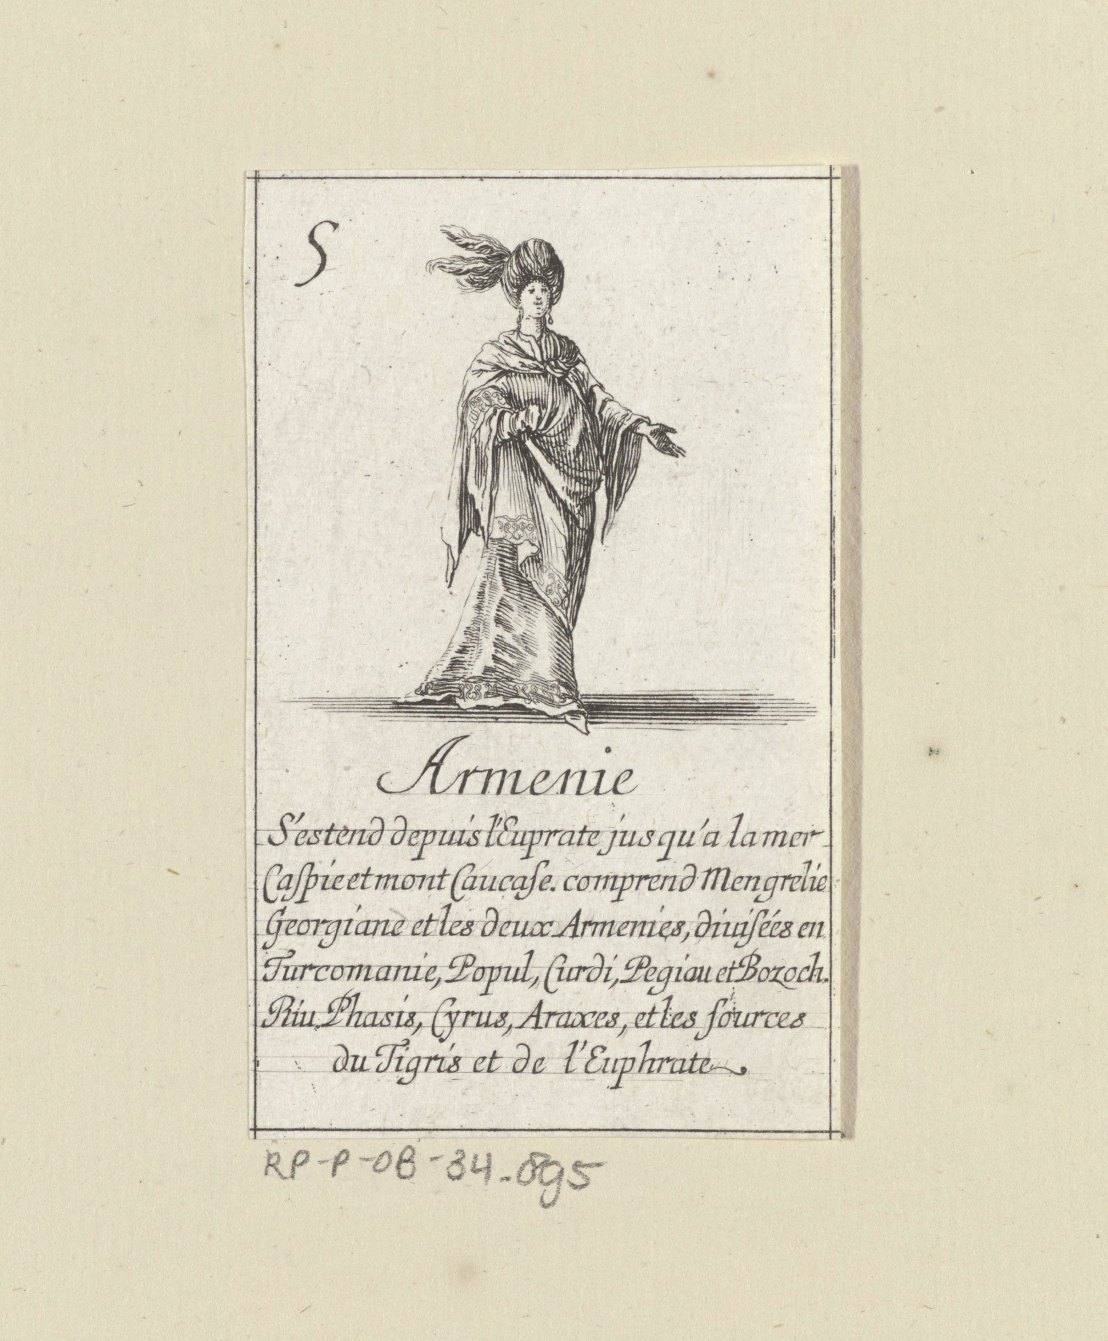 Armenian lady by Stefano della Bella, 1620 - 1664